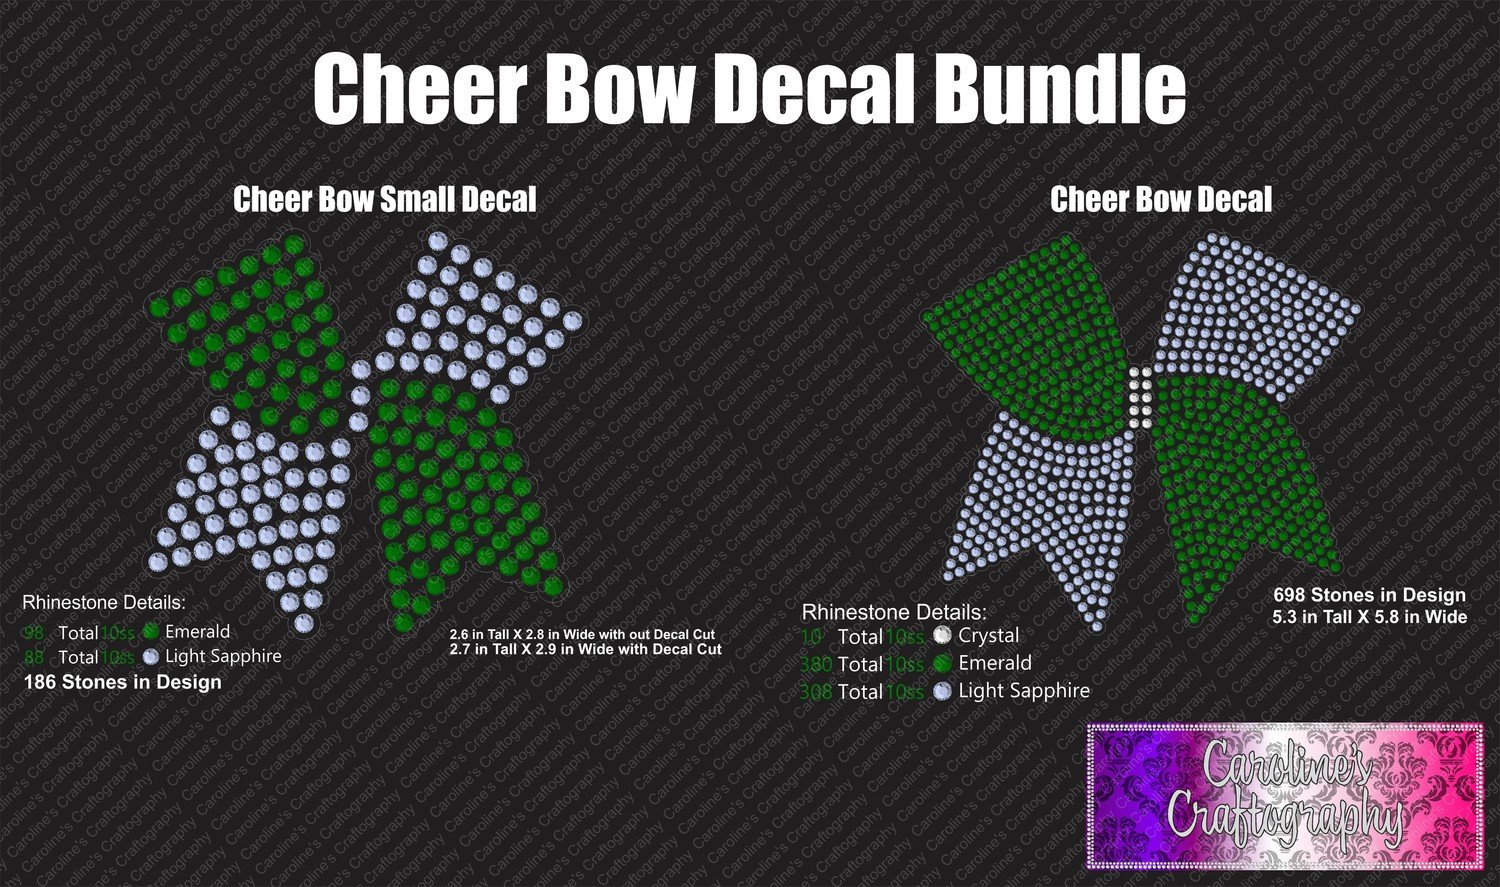 Cheer Bow Decals Bundle